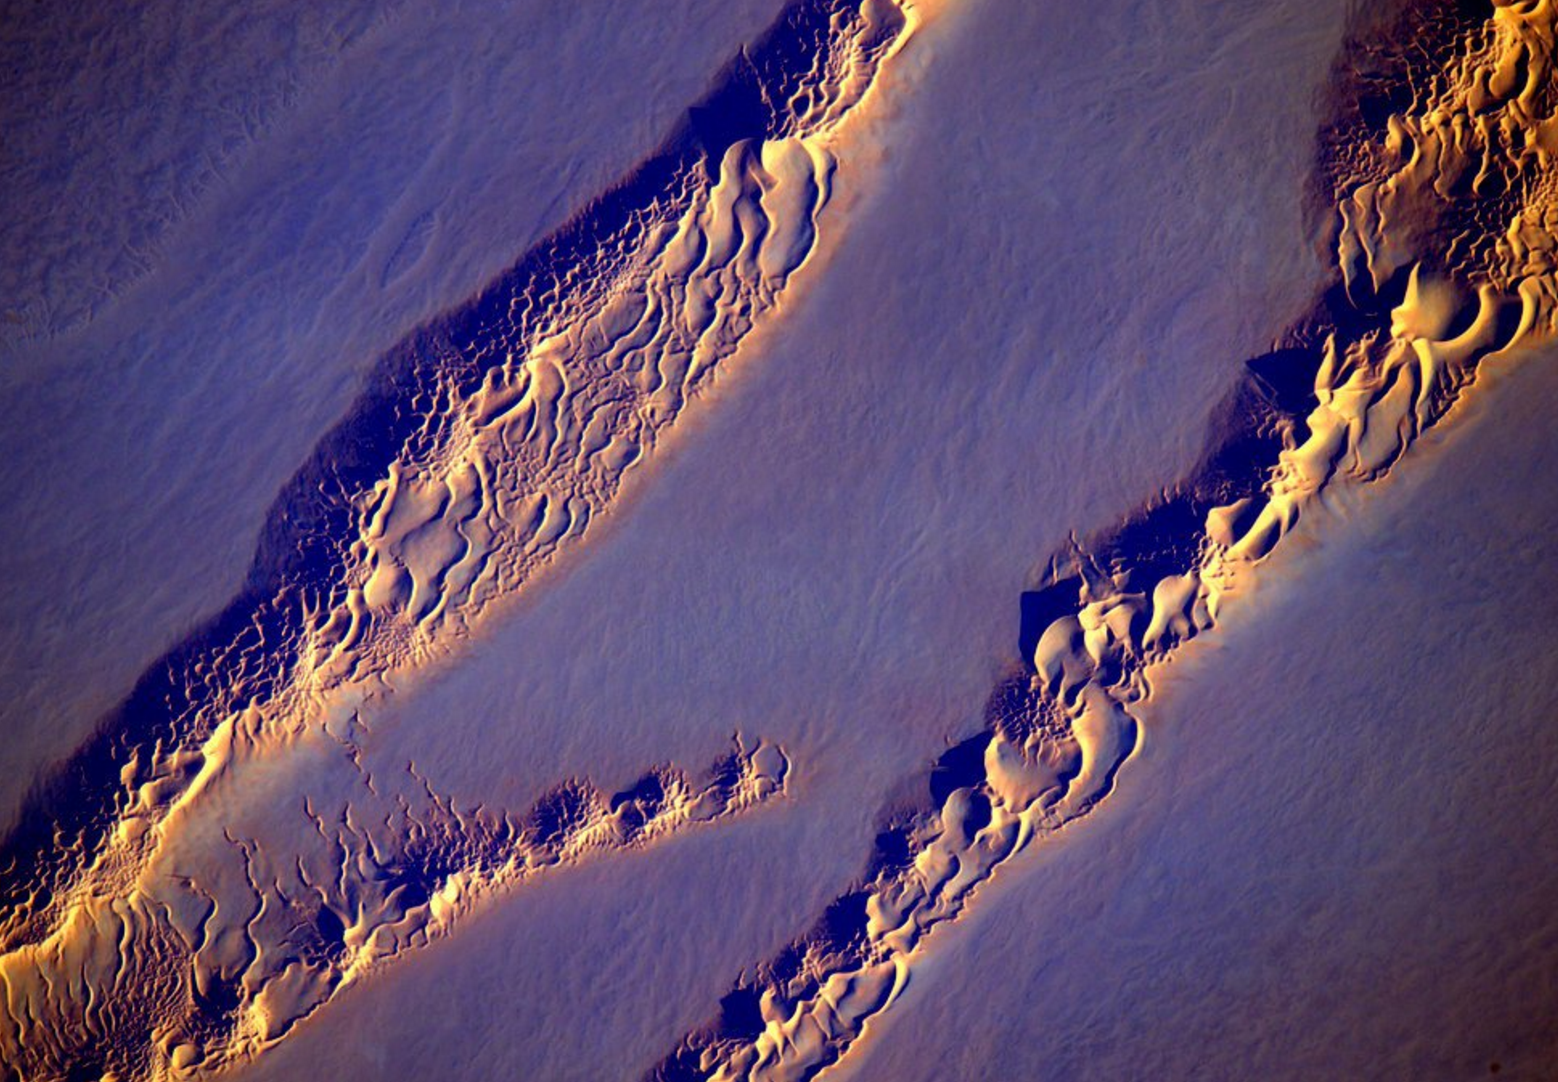 Desert Dunes from ISS by Scott Kelly